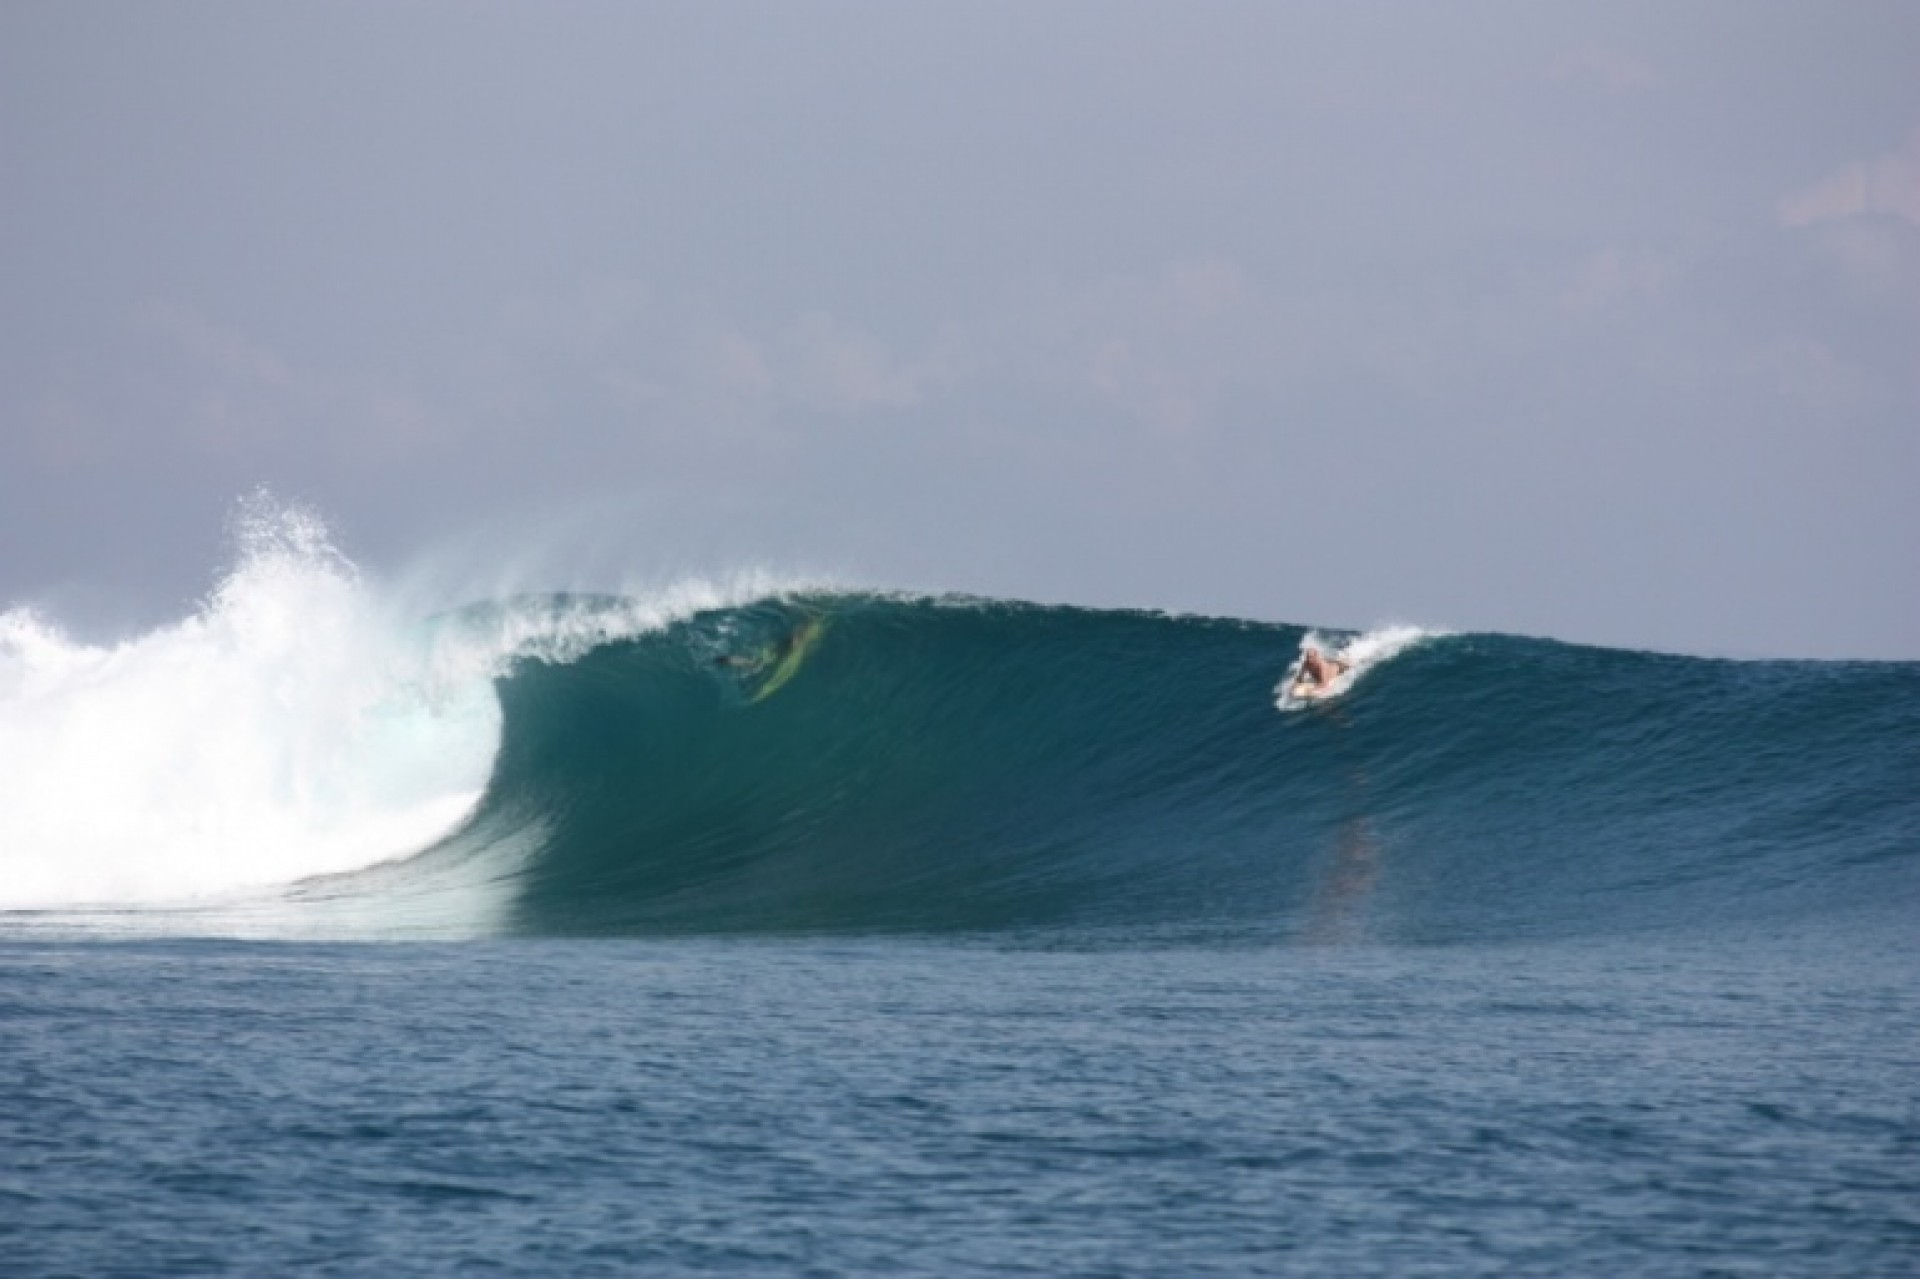 Indocean Surf Charters's photo of Scar Reef